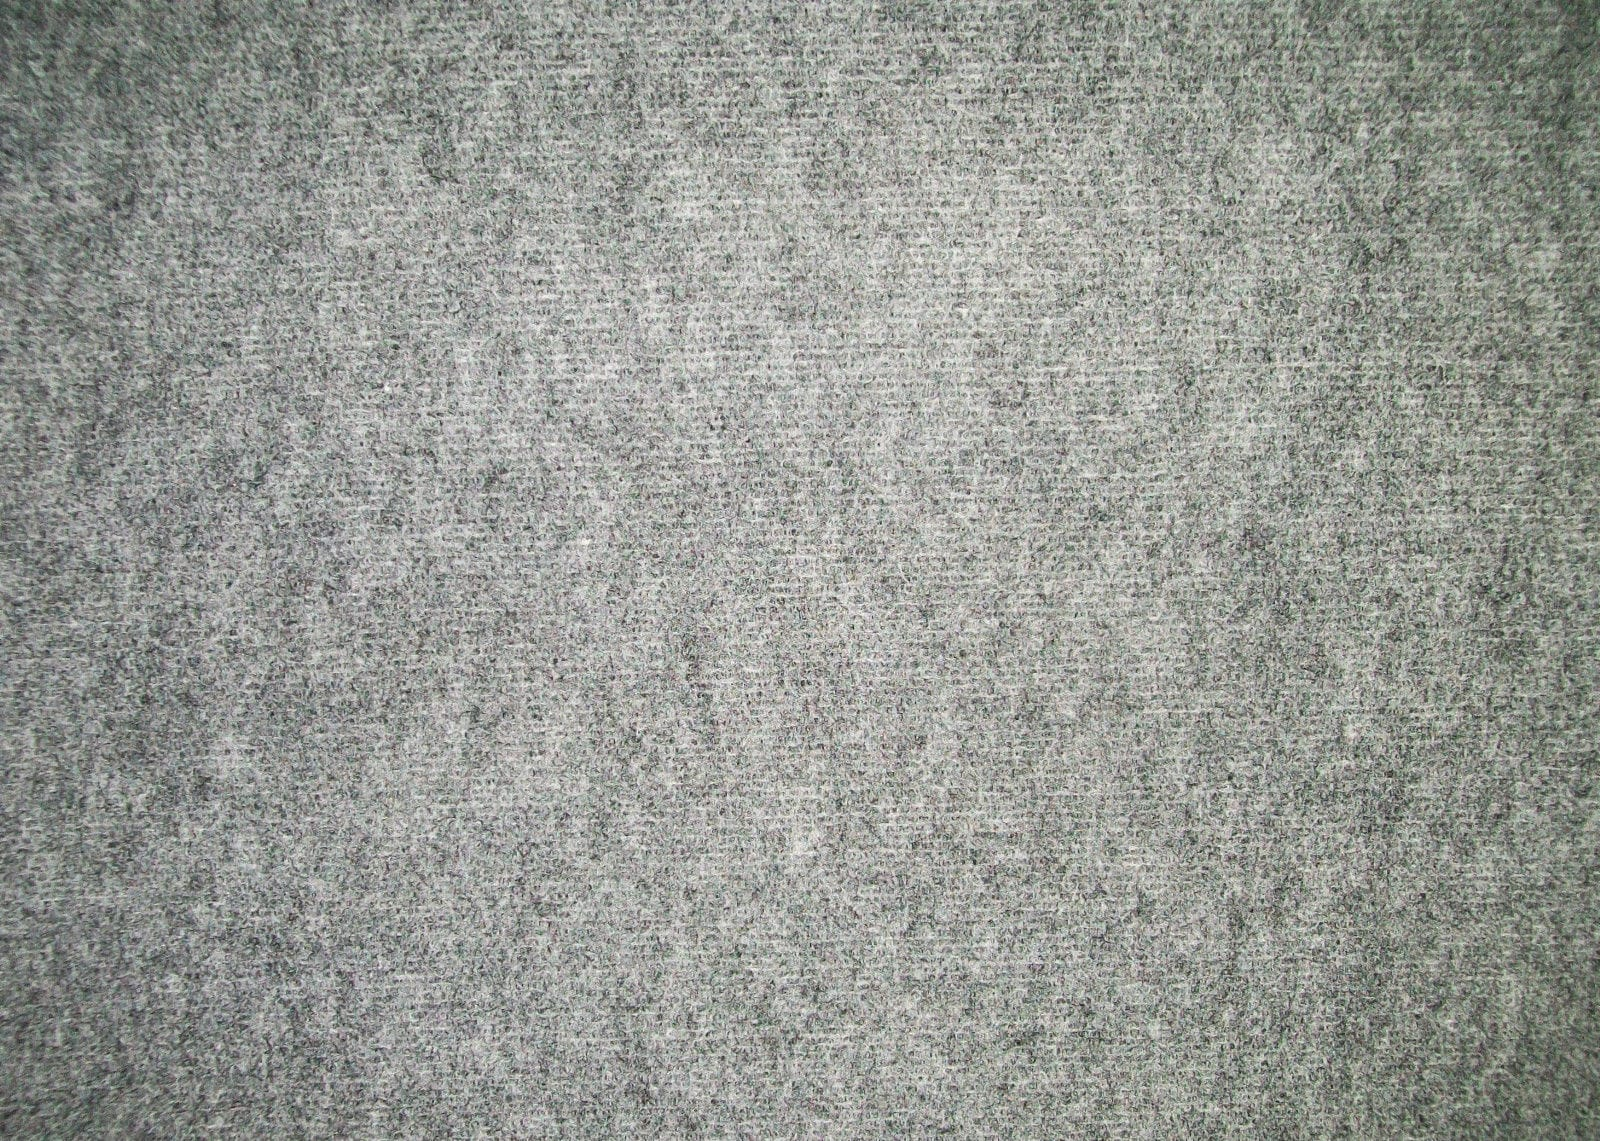 Misty Grey Indoor Outdoor Unbound Carpet Area Rug